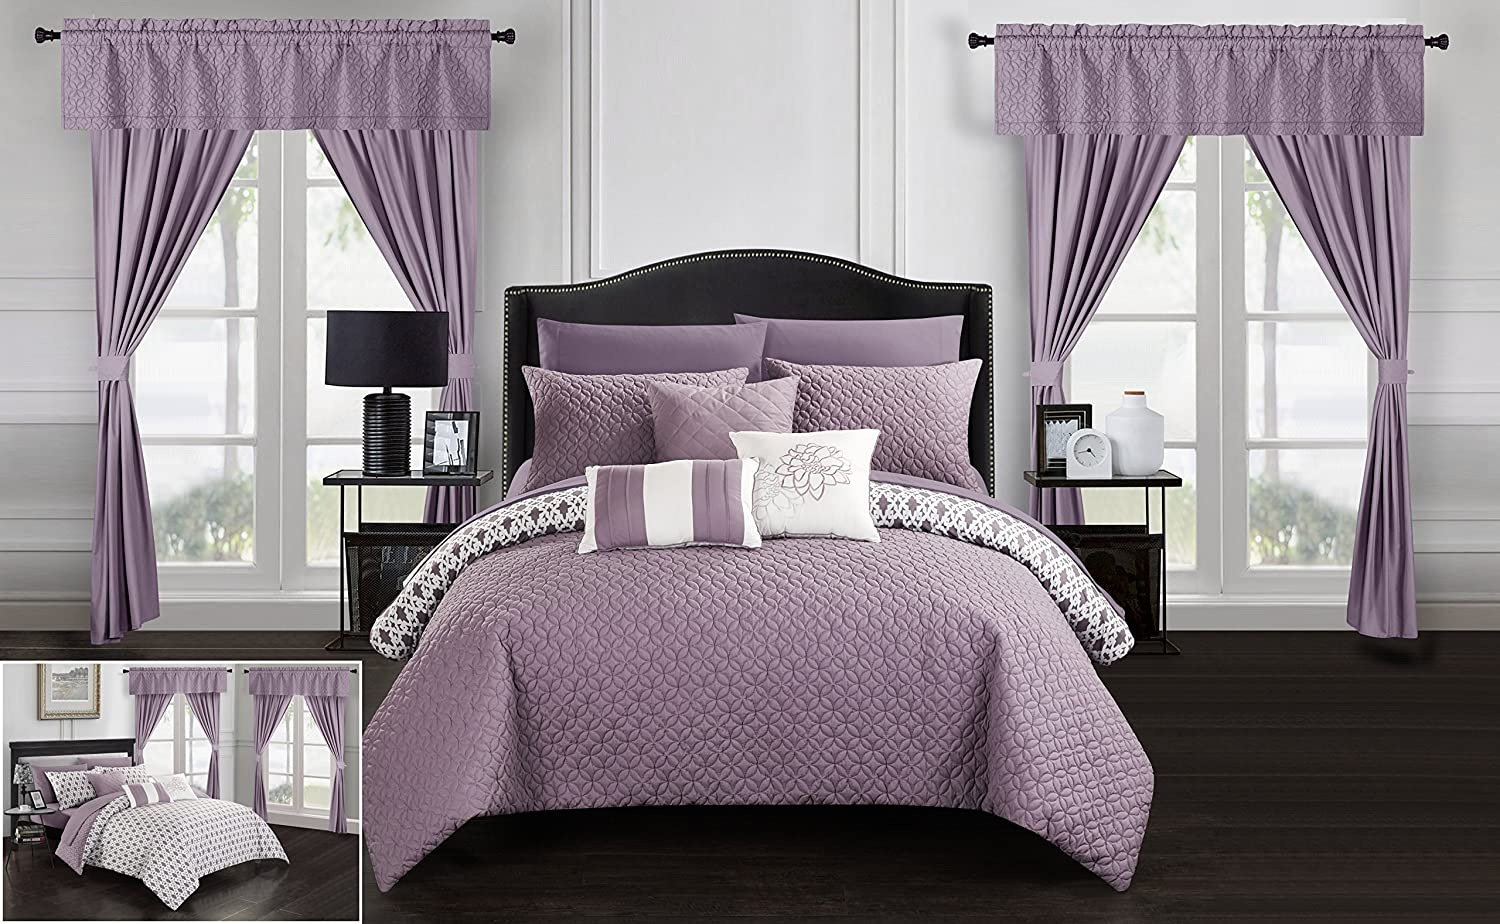 Chic Home Sigal 20 Piece Comforter Set Reversible Geometric Quilted Design Complete Bed in a Bag Bedding – Sheets Decorative Pillows Shams Window Treatments Curtains Included Queen Lavender